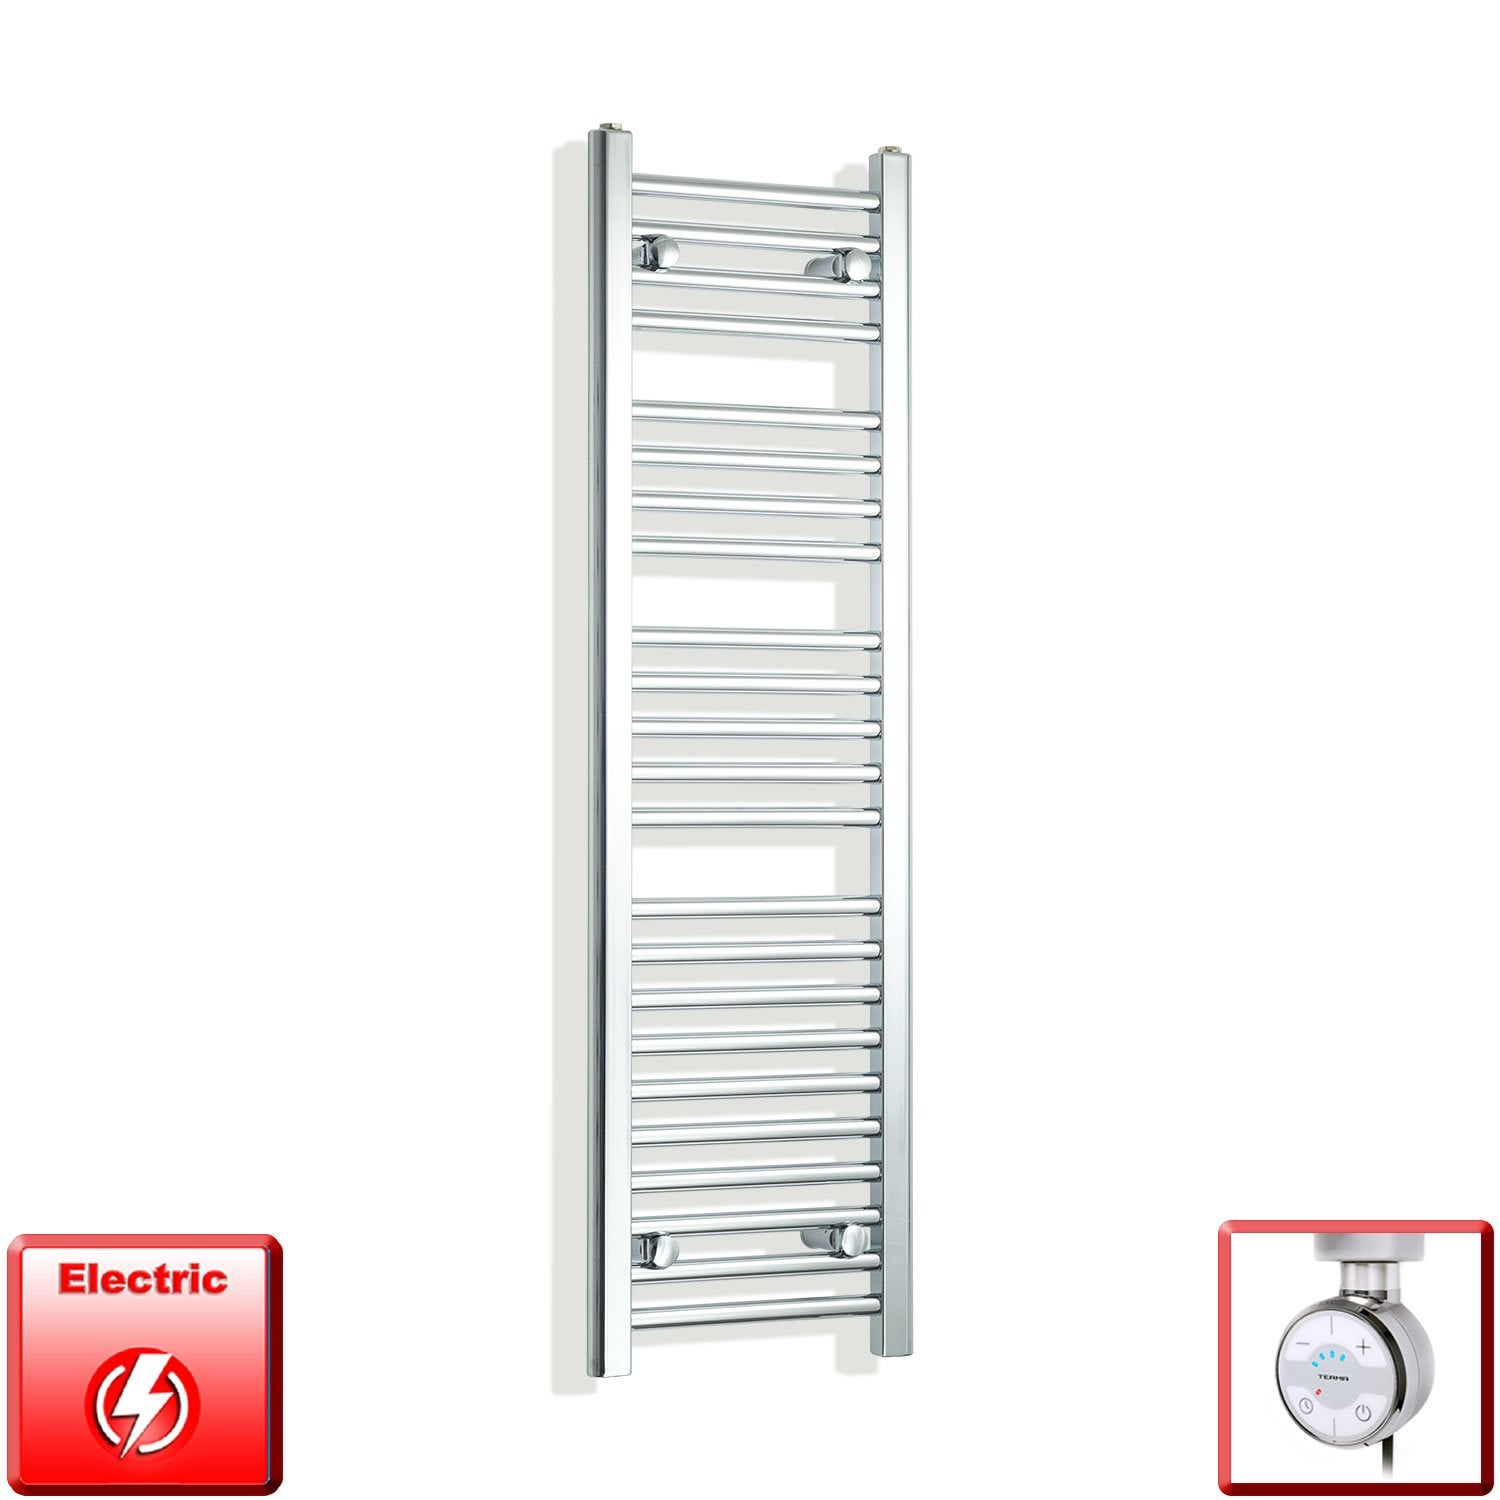 300mm Wide 1400mm High Flat Chrome Pre-Filled Electric Heated Towel Rail Radiator HTR,MOA Thermostatic Element